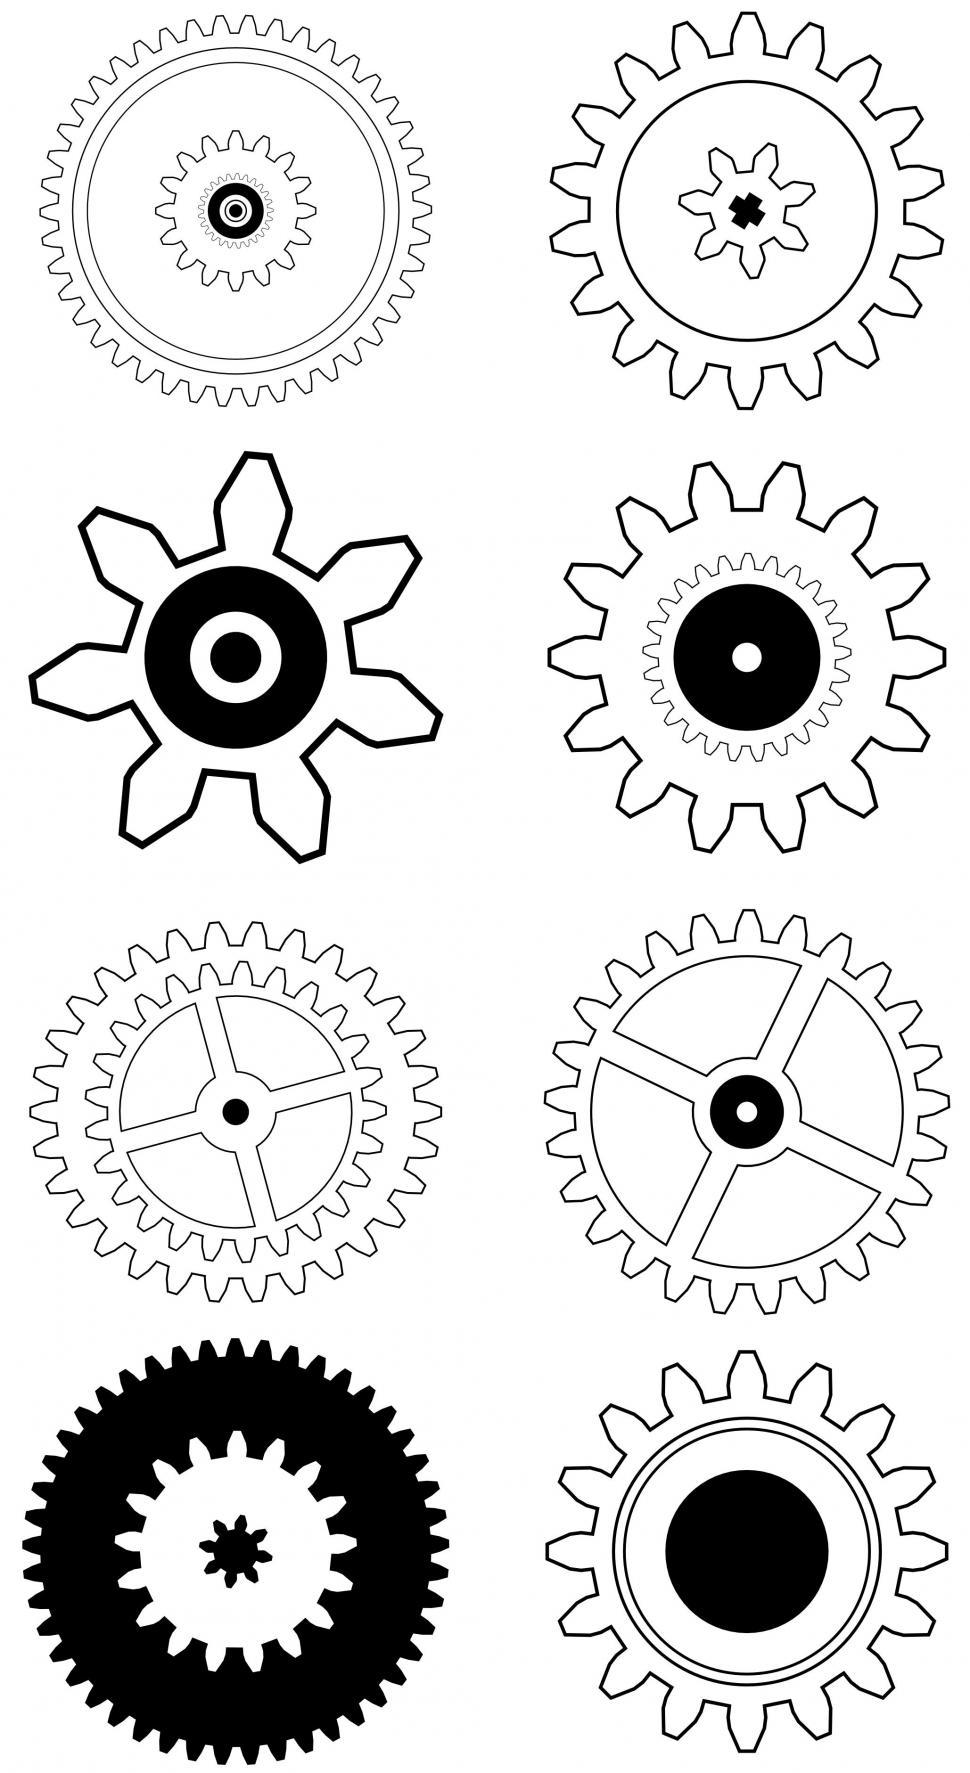 Download Free Stock HD Photo of Gear Icons Online